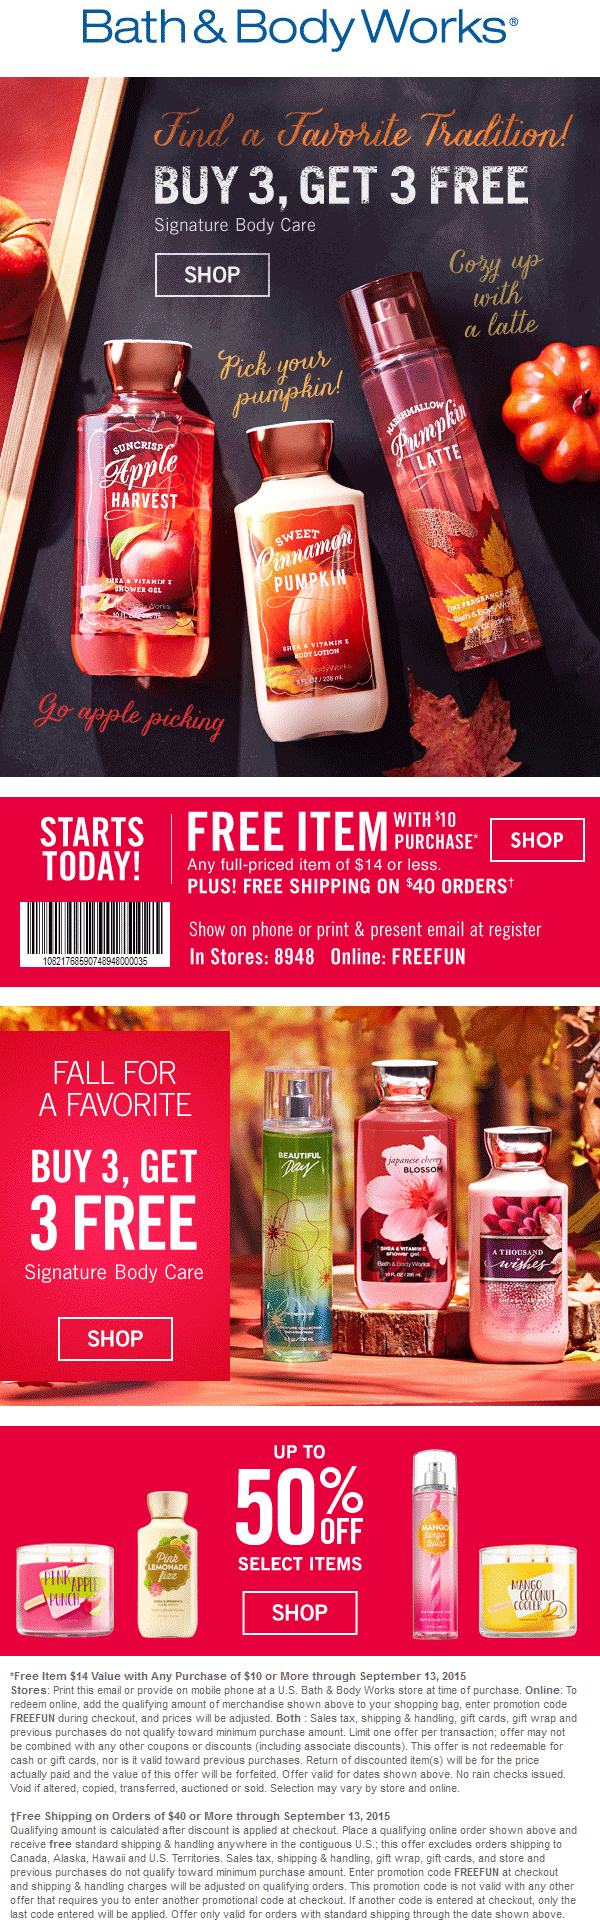 Bath & Body Works Coupon December 2016 $14 item free with $10 spent at Bath & Body Works, or online via promo code FREEFUN